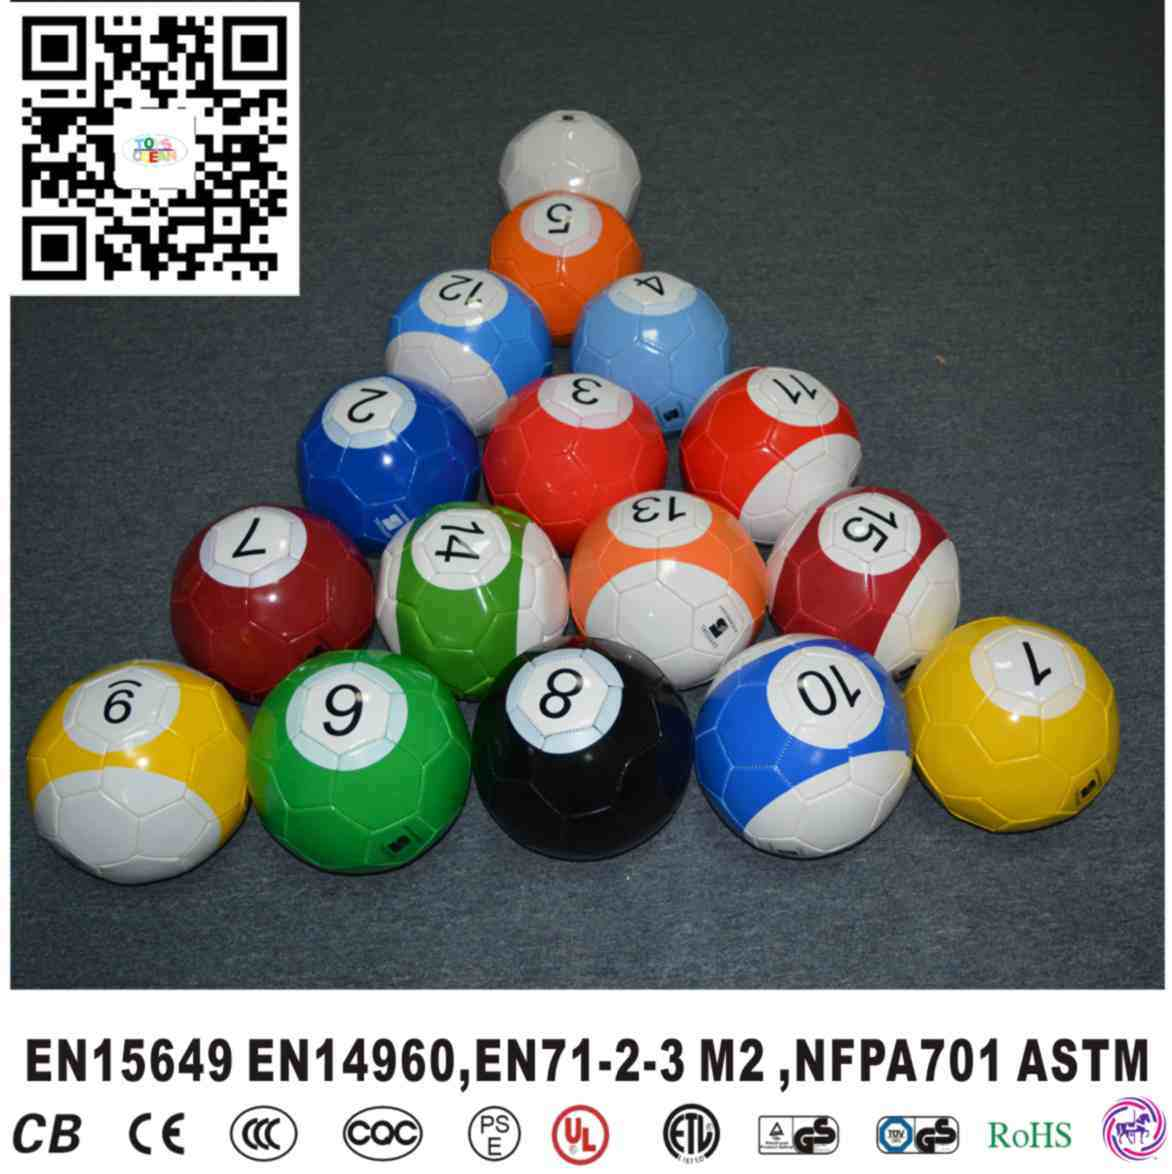 balls file table wiki billiards pool wikipedia